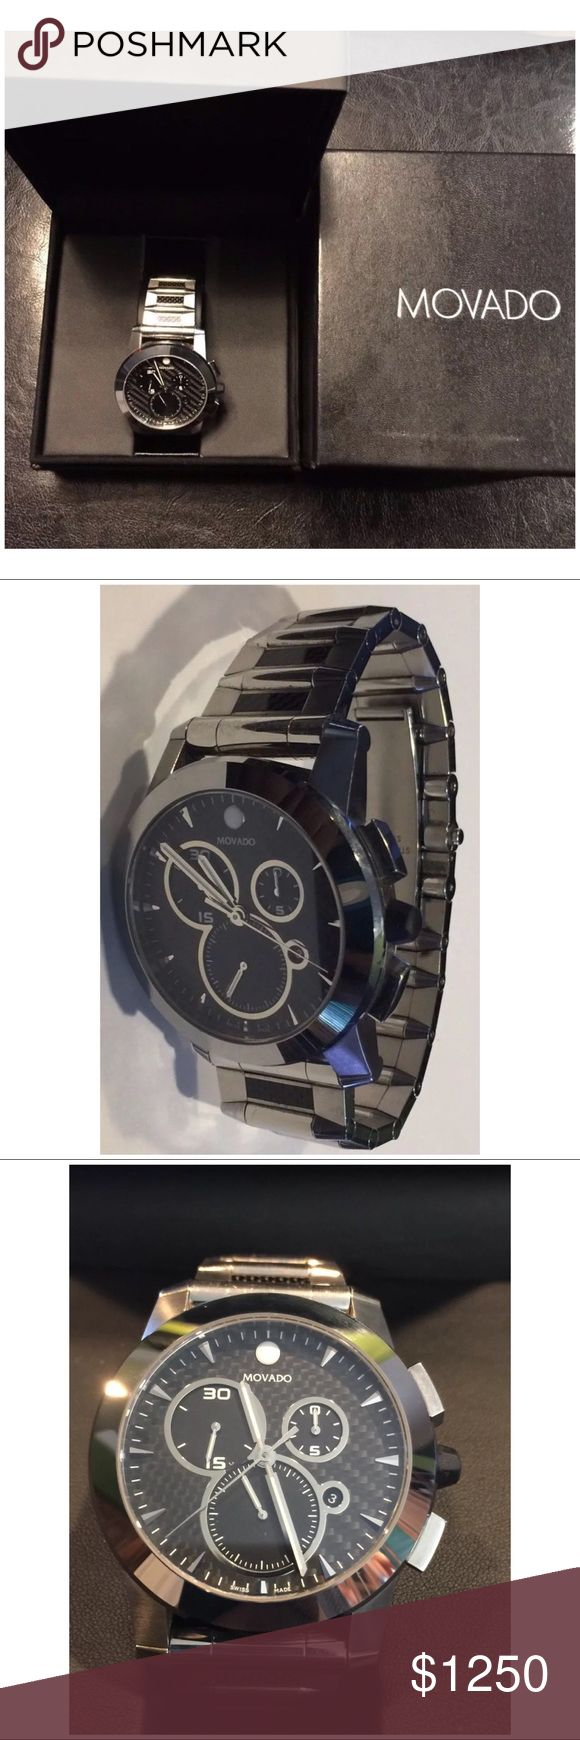 Selling this Men's Movado Vizio Chronograph Tungsten Watch on Poshmark! My username is: robinsongal43. #shopmycloset #poshmark #fashion #shopping #style #forsale #Movado #Other